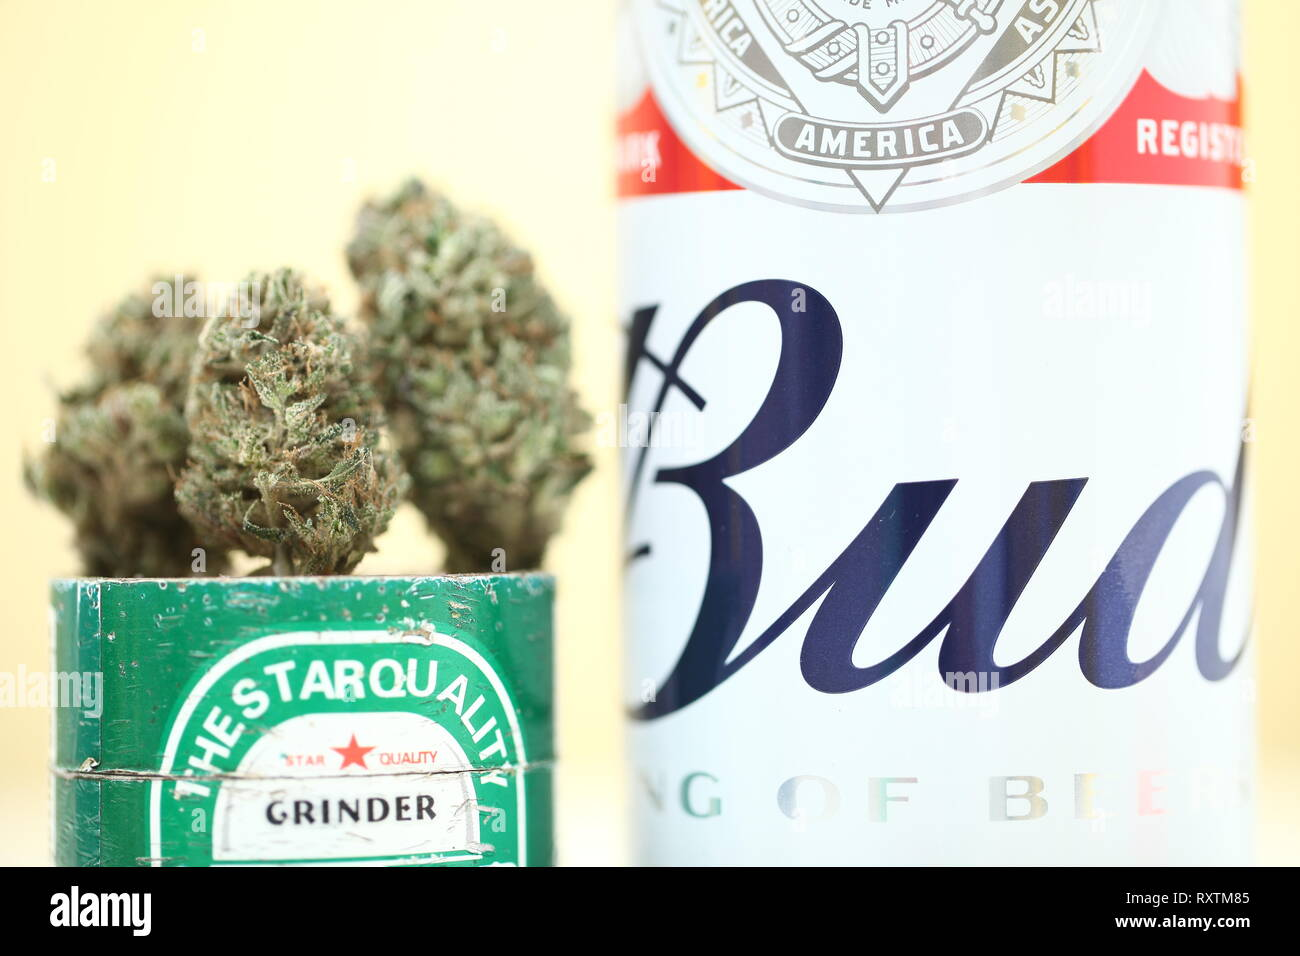 Budweiser Can Stock Photos & Budweiser Can Stock Images - Alamy